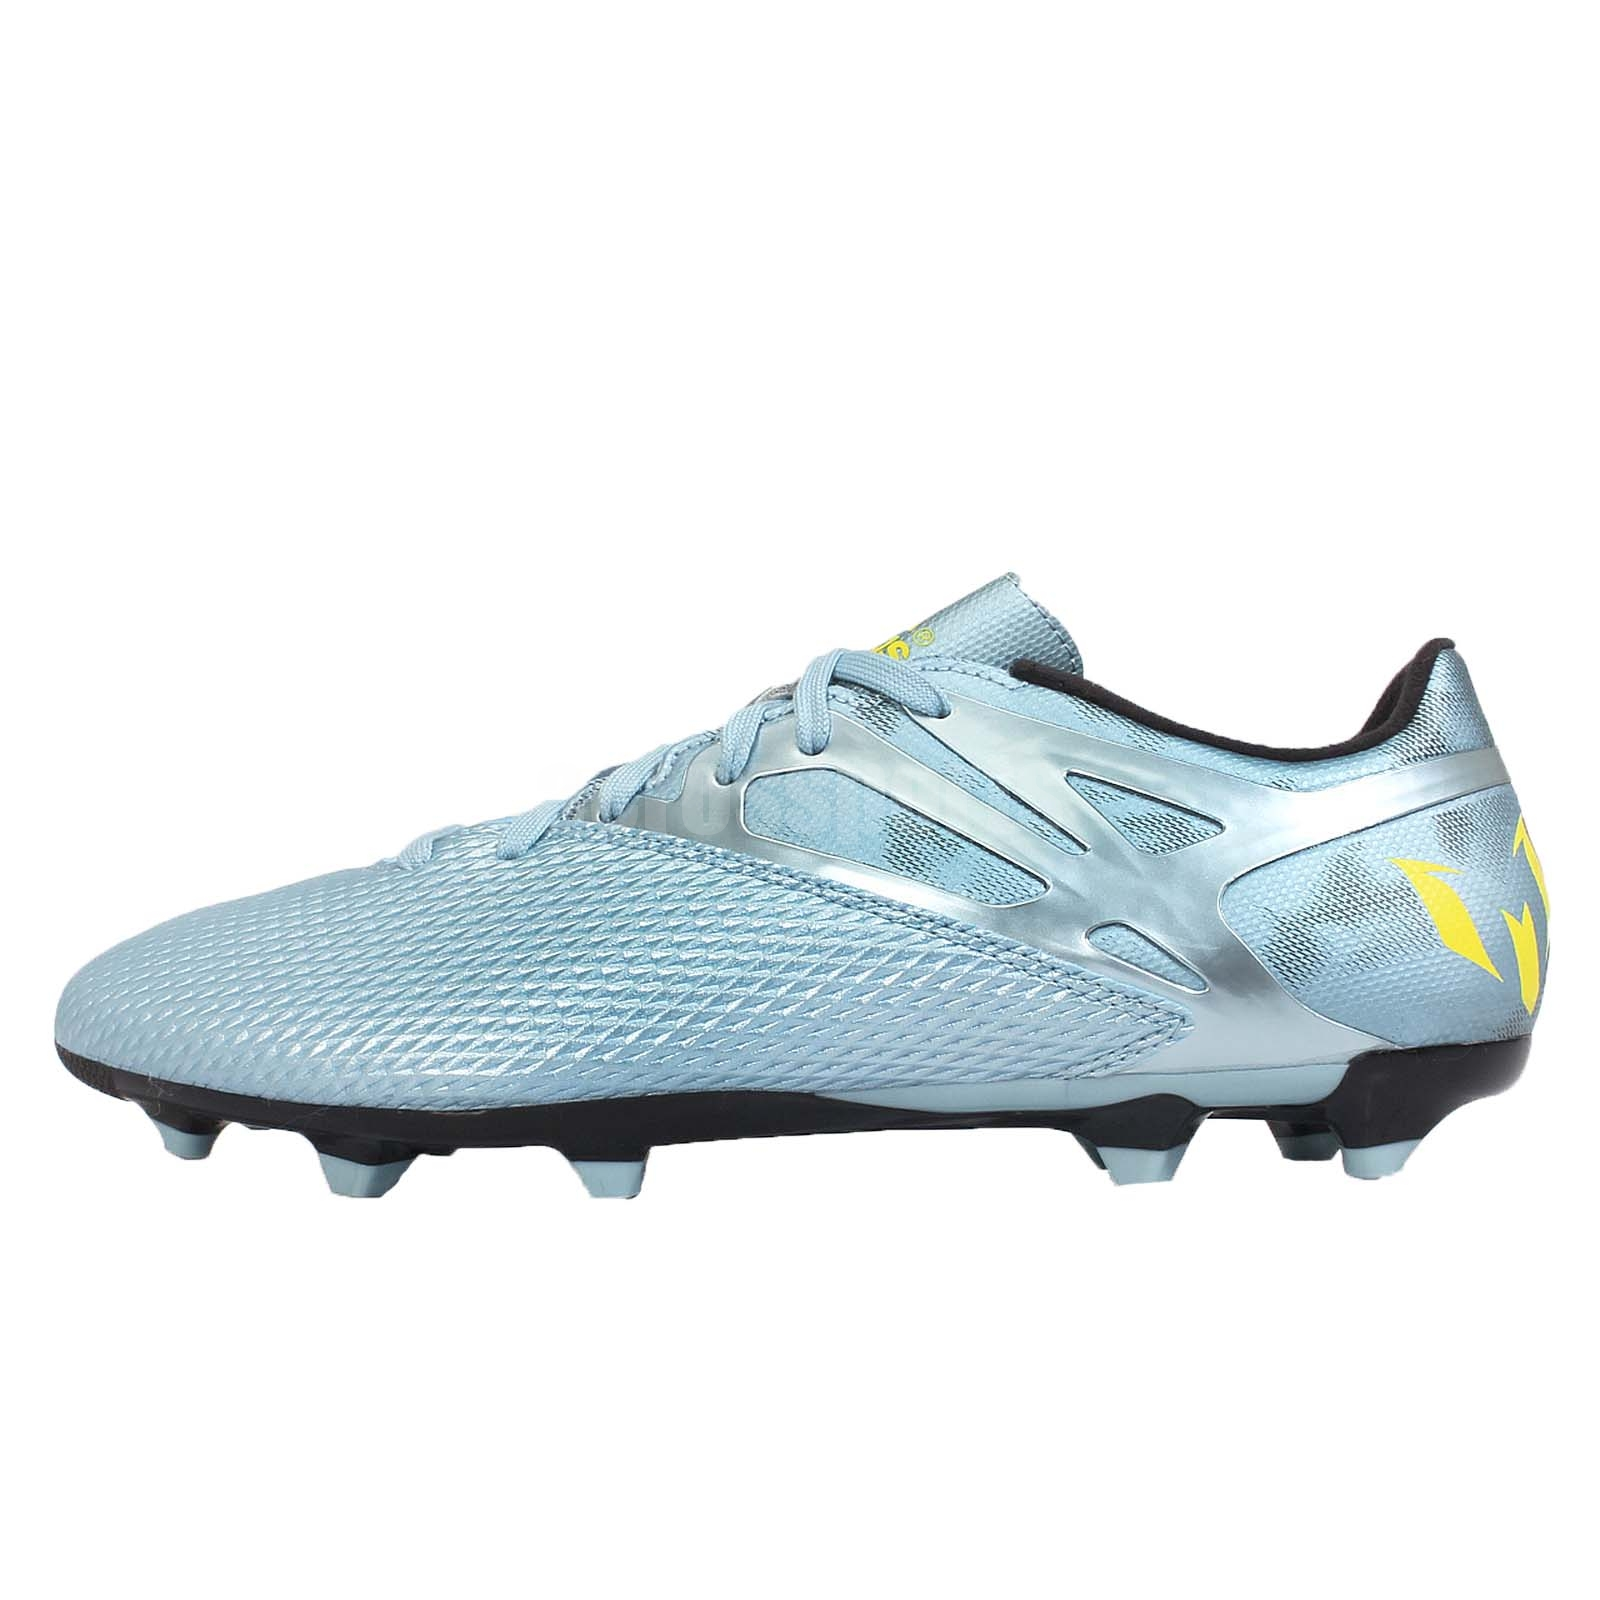 Messi Cleats Images - Reverse Search